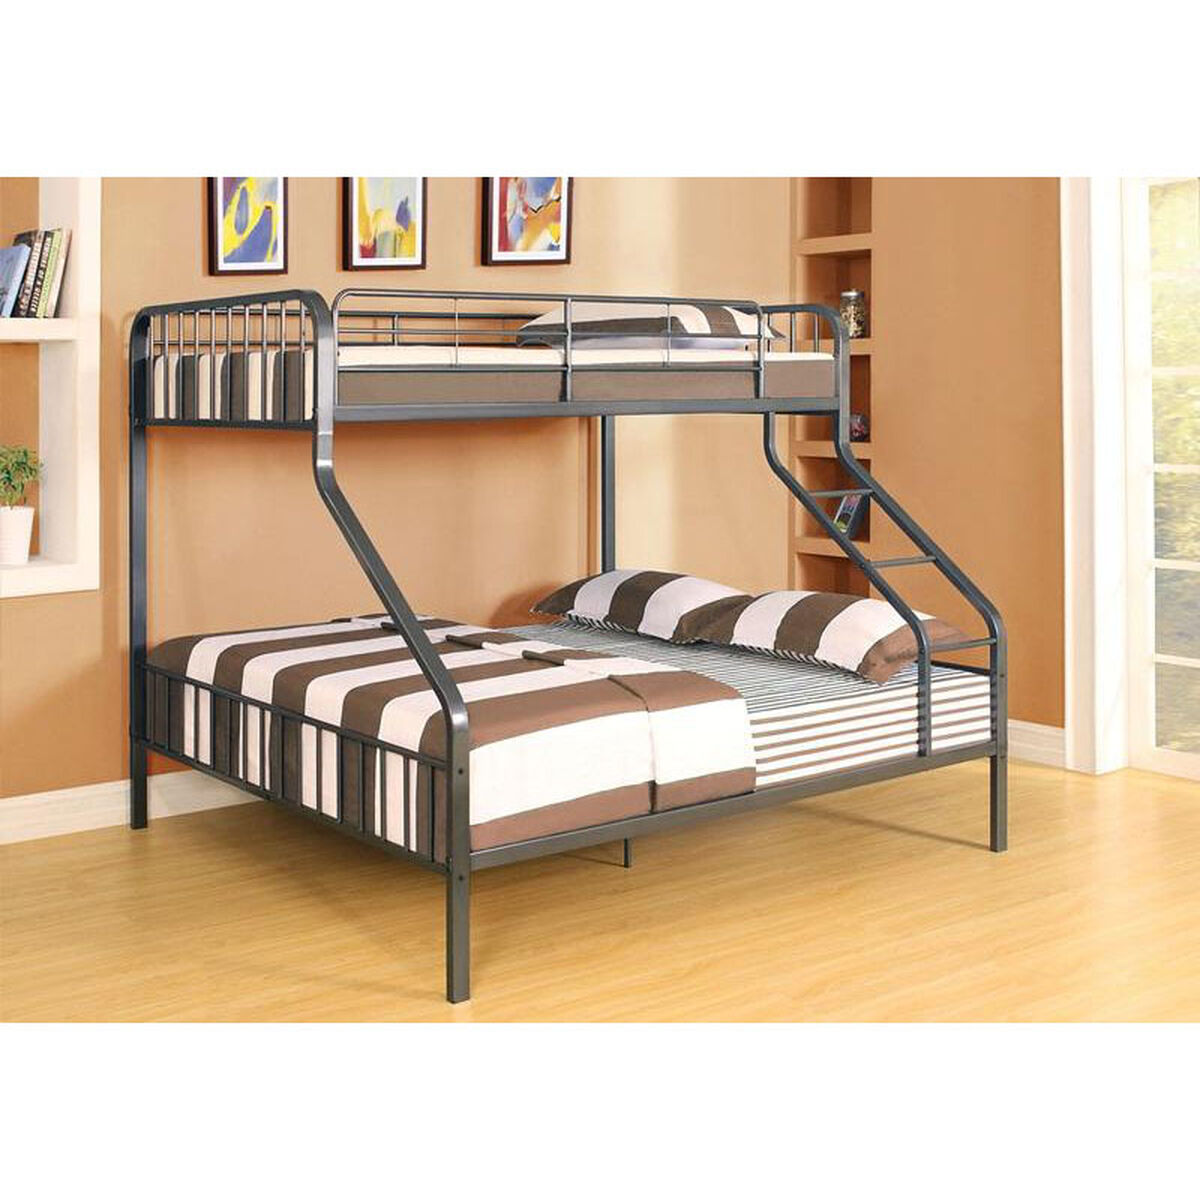 Our Caius Xl Twin Over Queen Metal Bunk Bed Gunmetal Is On Now